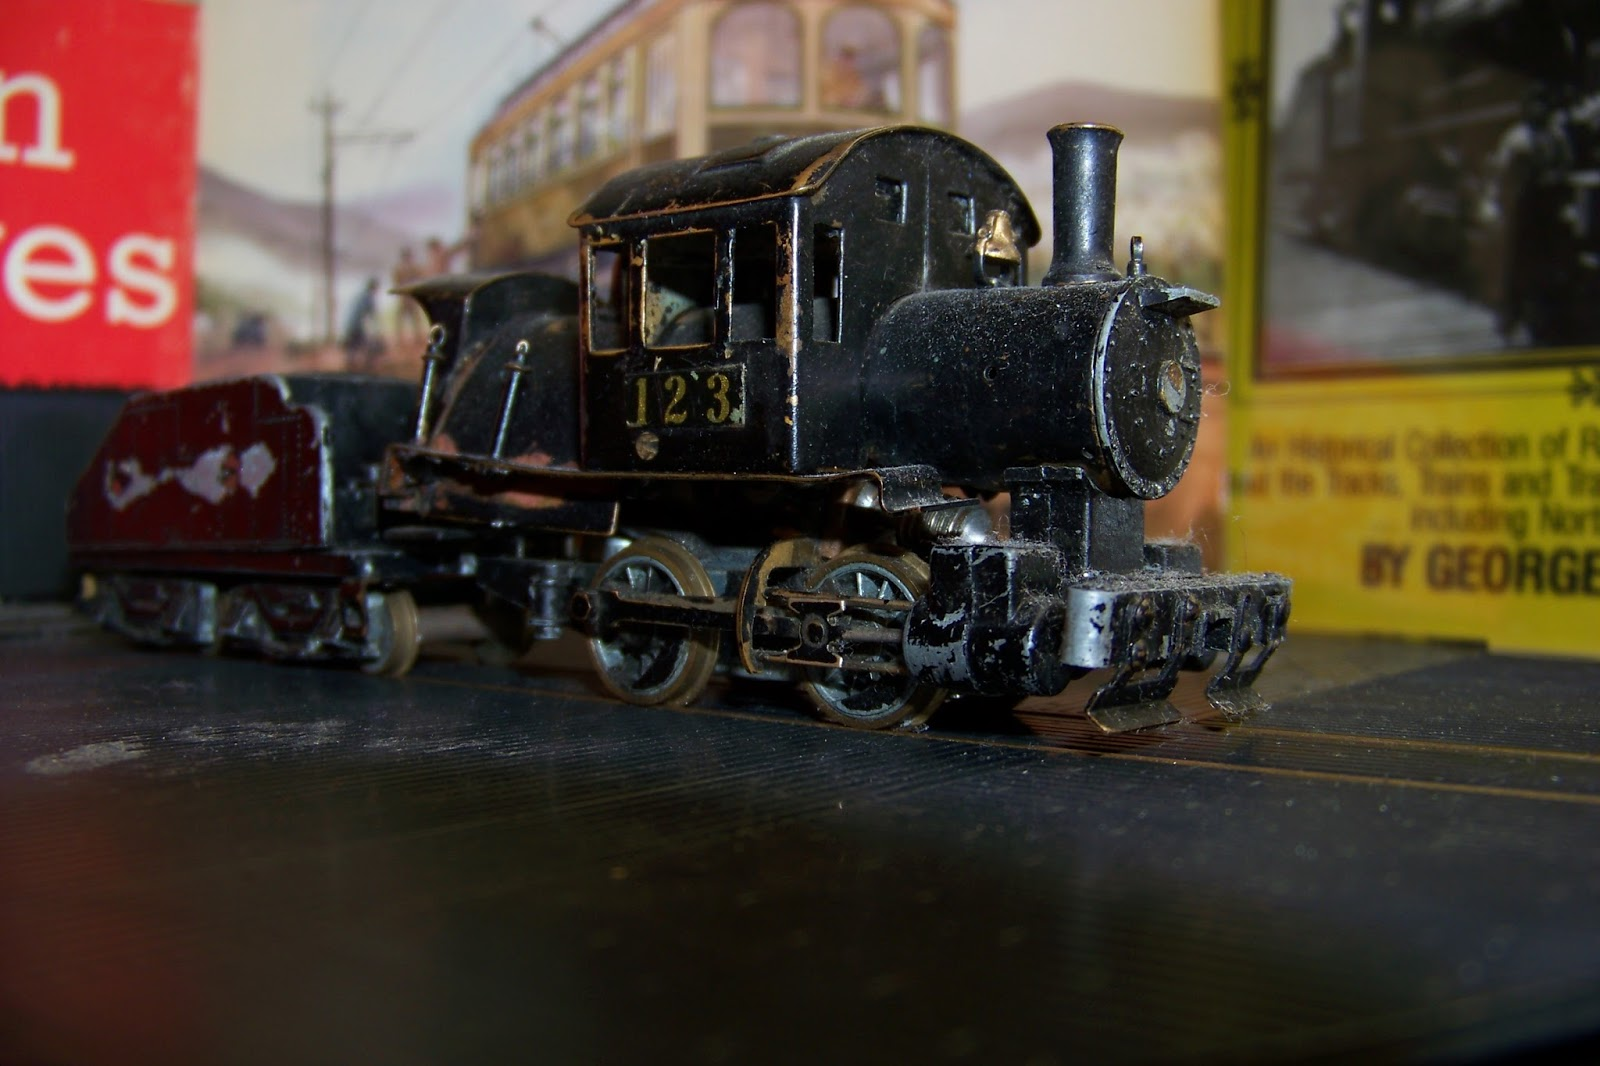 Niko Bautistas Model Railroad Roundhouse Two Circuits Railroader Magazine Railroading My New Old Mantua Yard Goat Heres To The Pioneer Boomer Railroaders